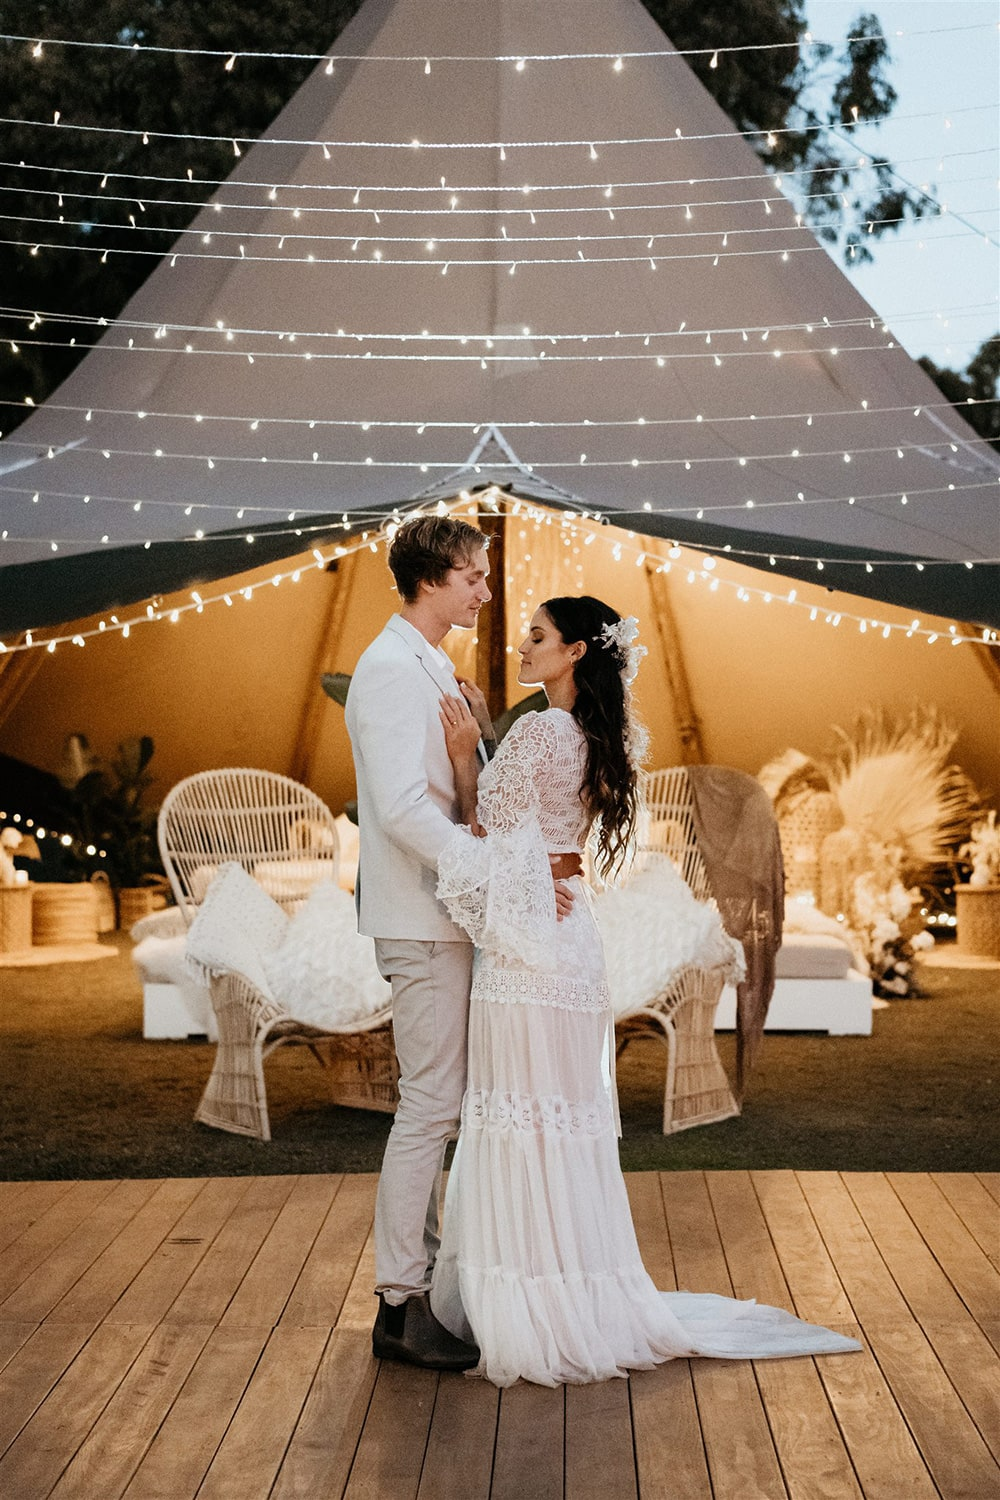 Outdoor Festival Bohemian Wedding Inspiration   This loved-up couple shares their first dance on a timber dance floor beneath a canopy of twinkling fairy lights and in front of a large tipi styled with eclectic lounge seating.   Photography: Shae Estella Photo